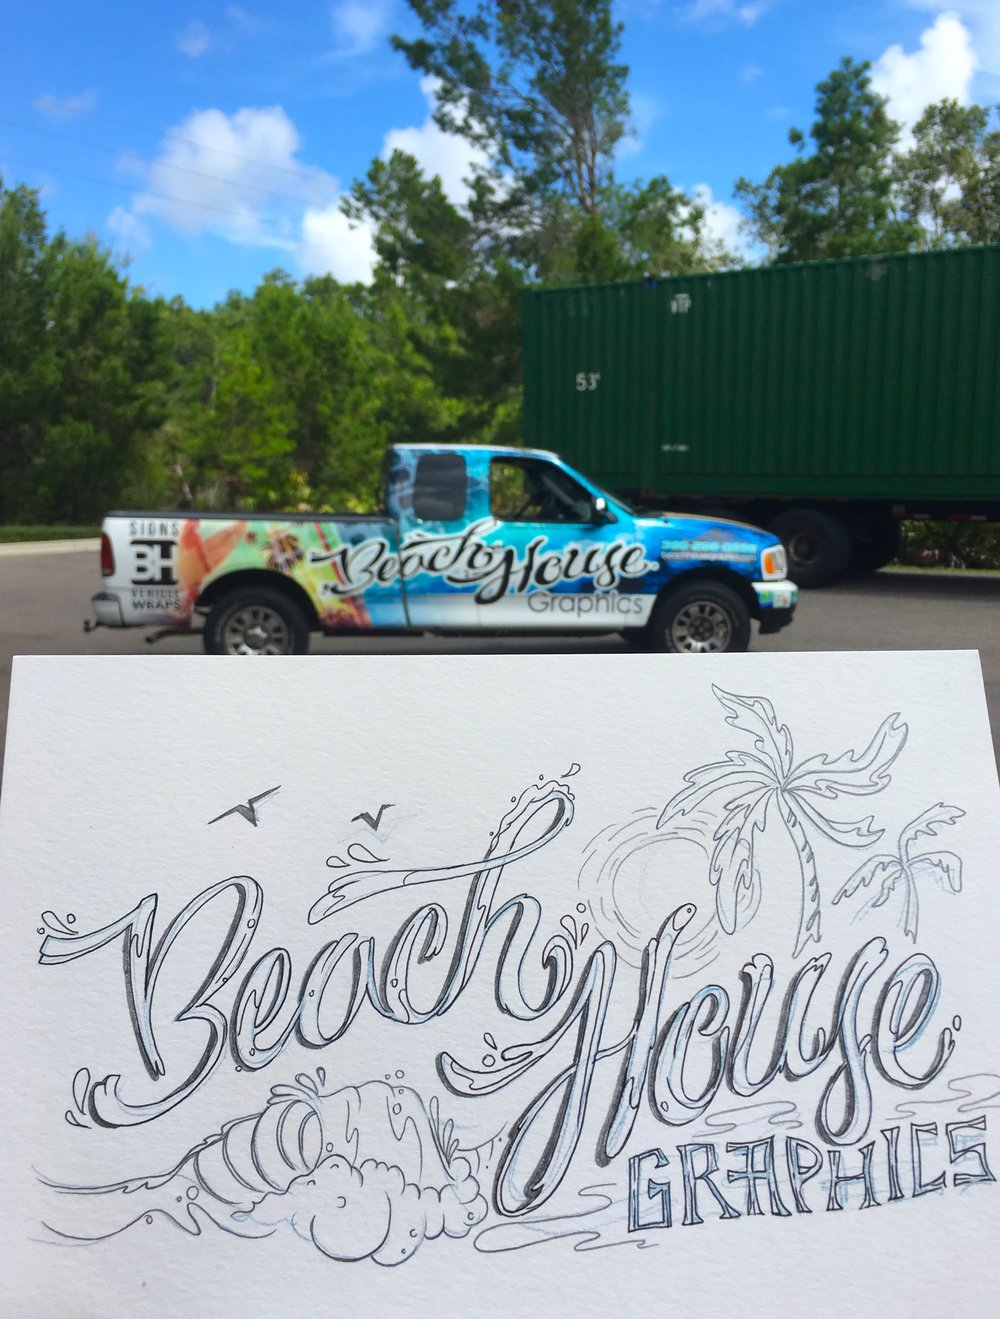 Lettering sketch by Jucel Meneses Vinyl wrap design by www.beachhousegraphics.com